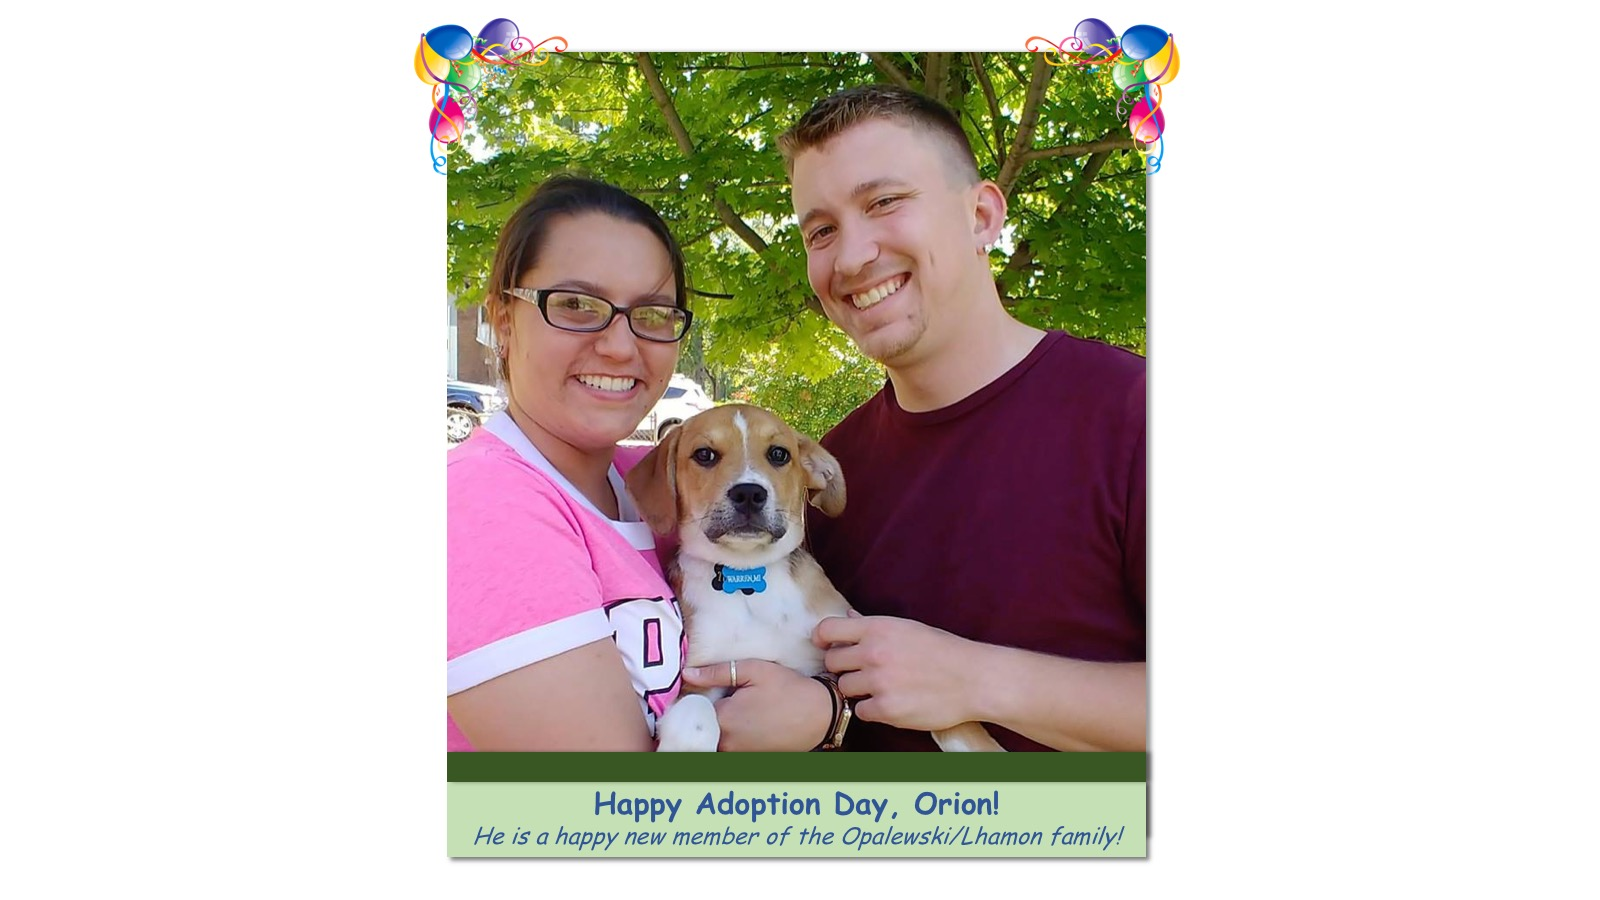 Orion_Adoption_Photo_2018.jpg